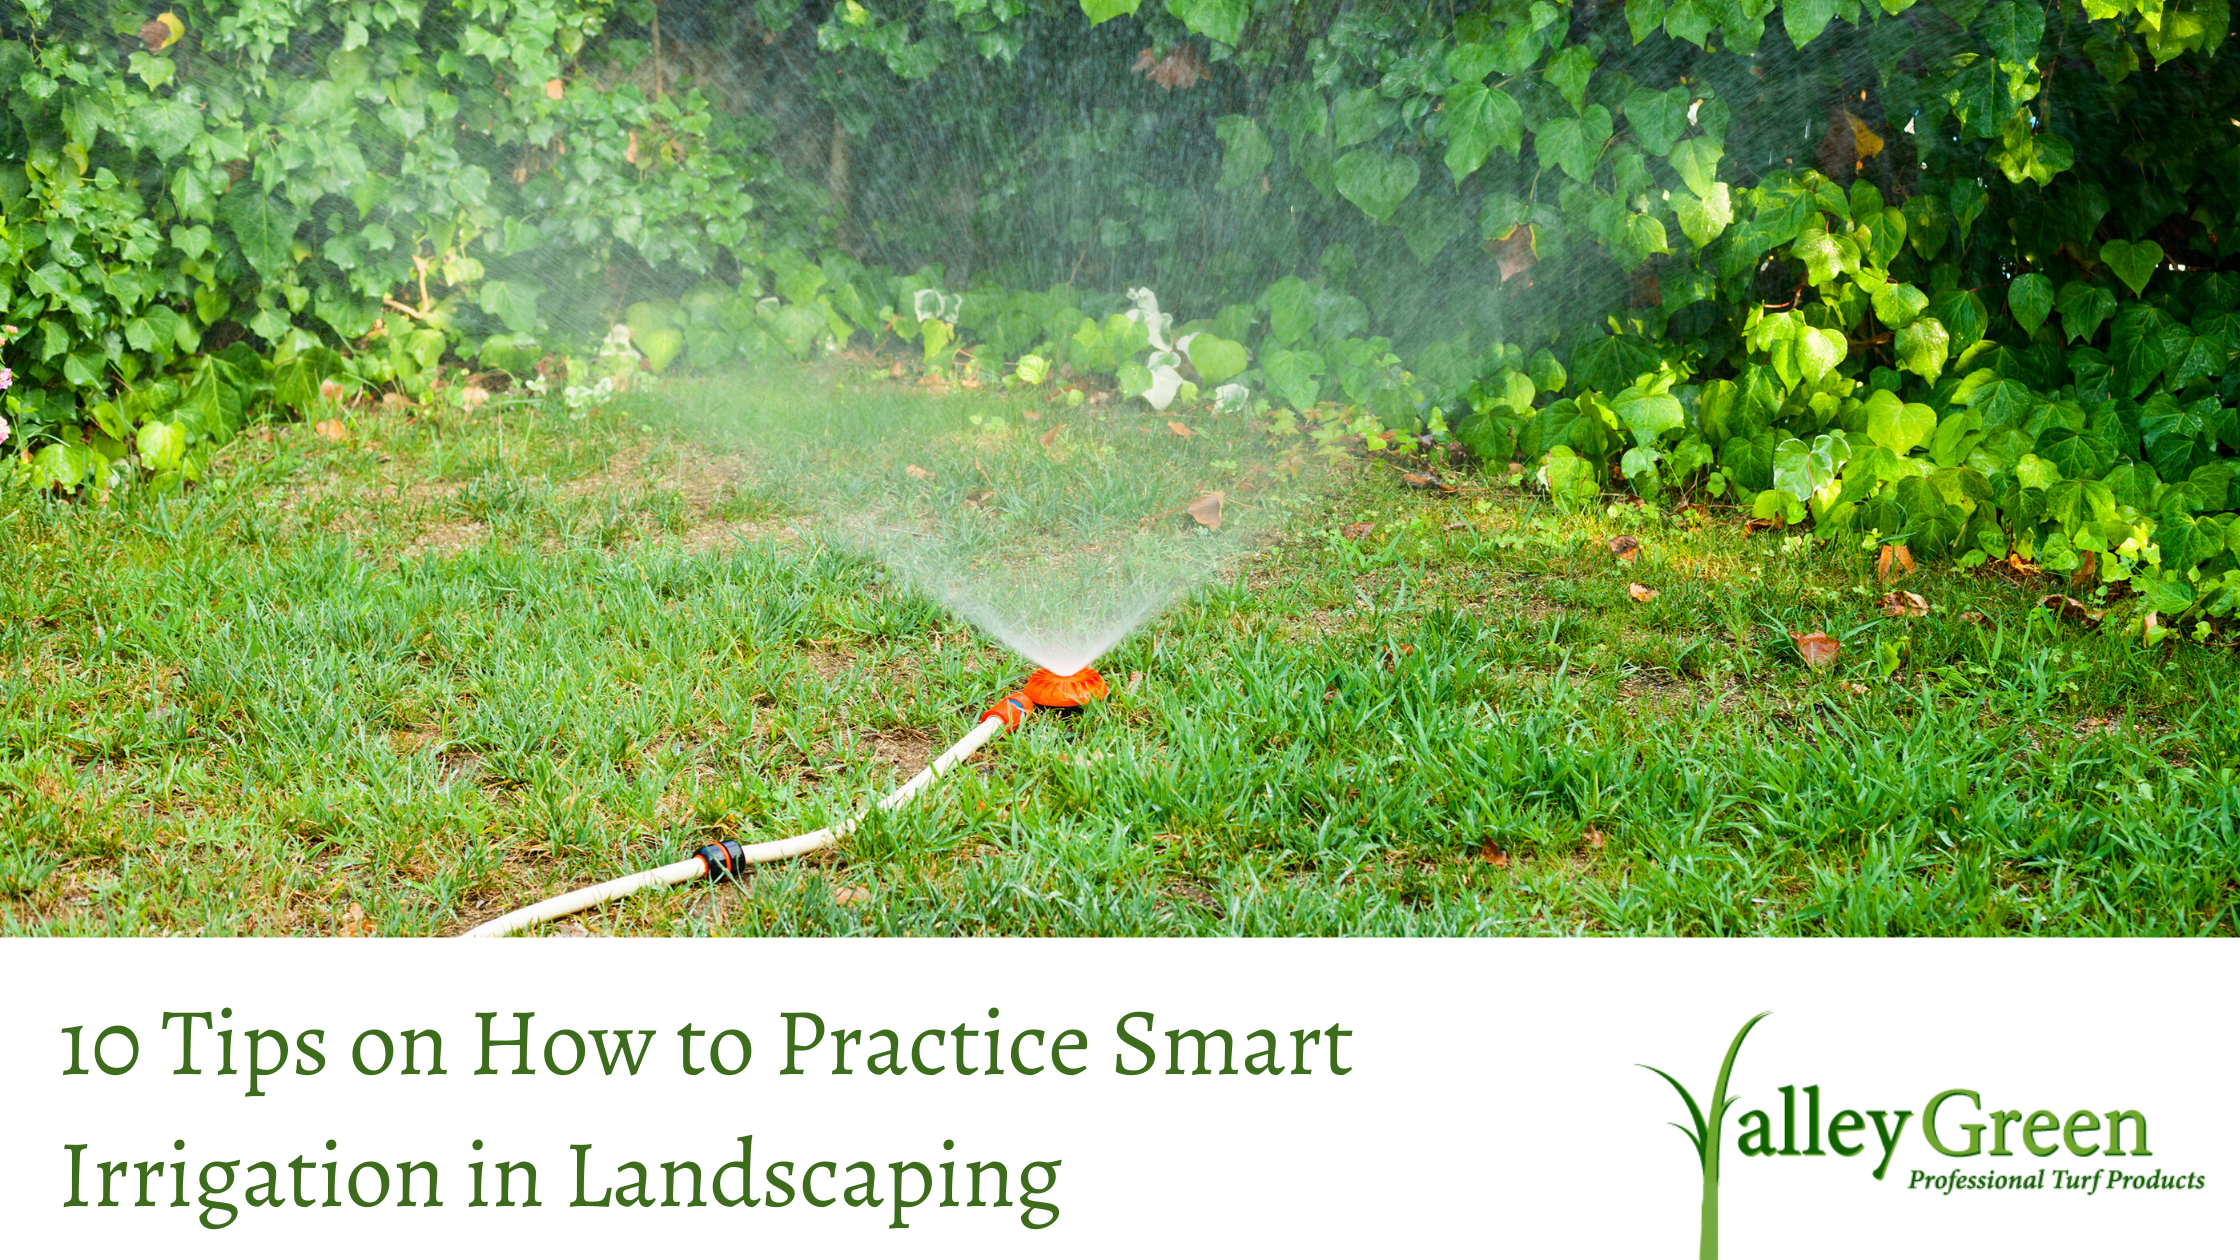 10 Tips on How to Practice Smart Irrigation in Landscaping